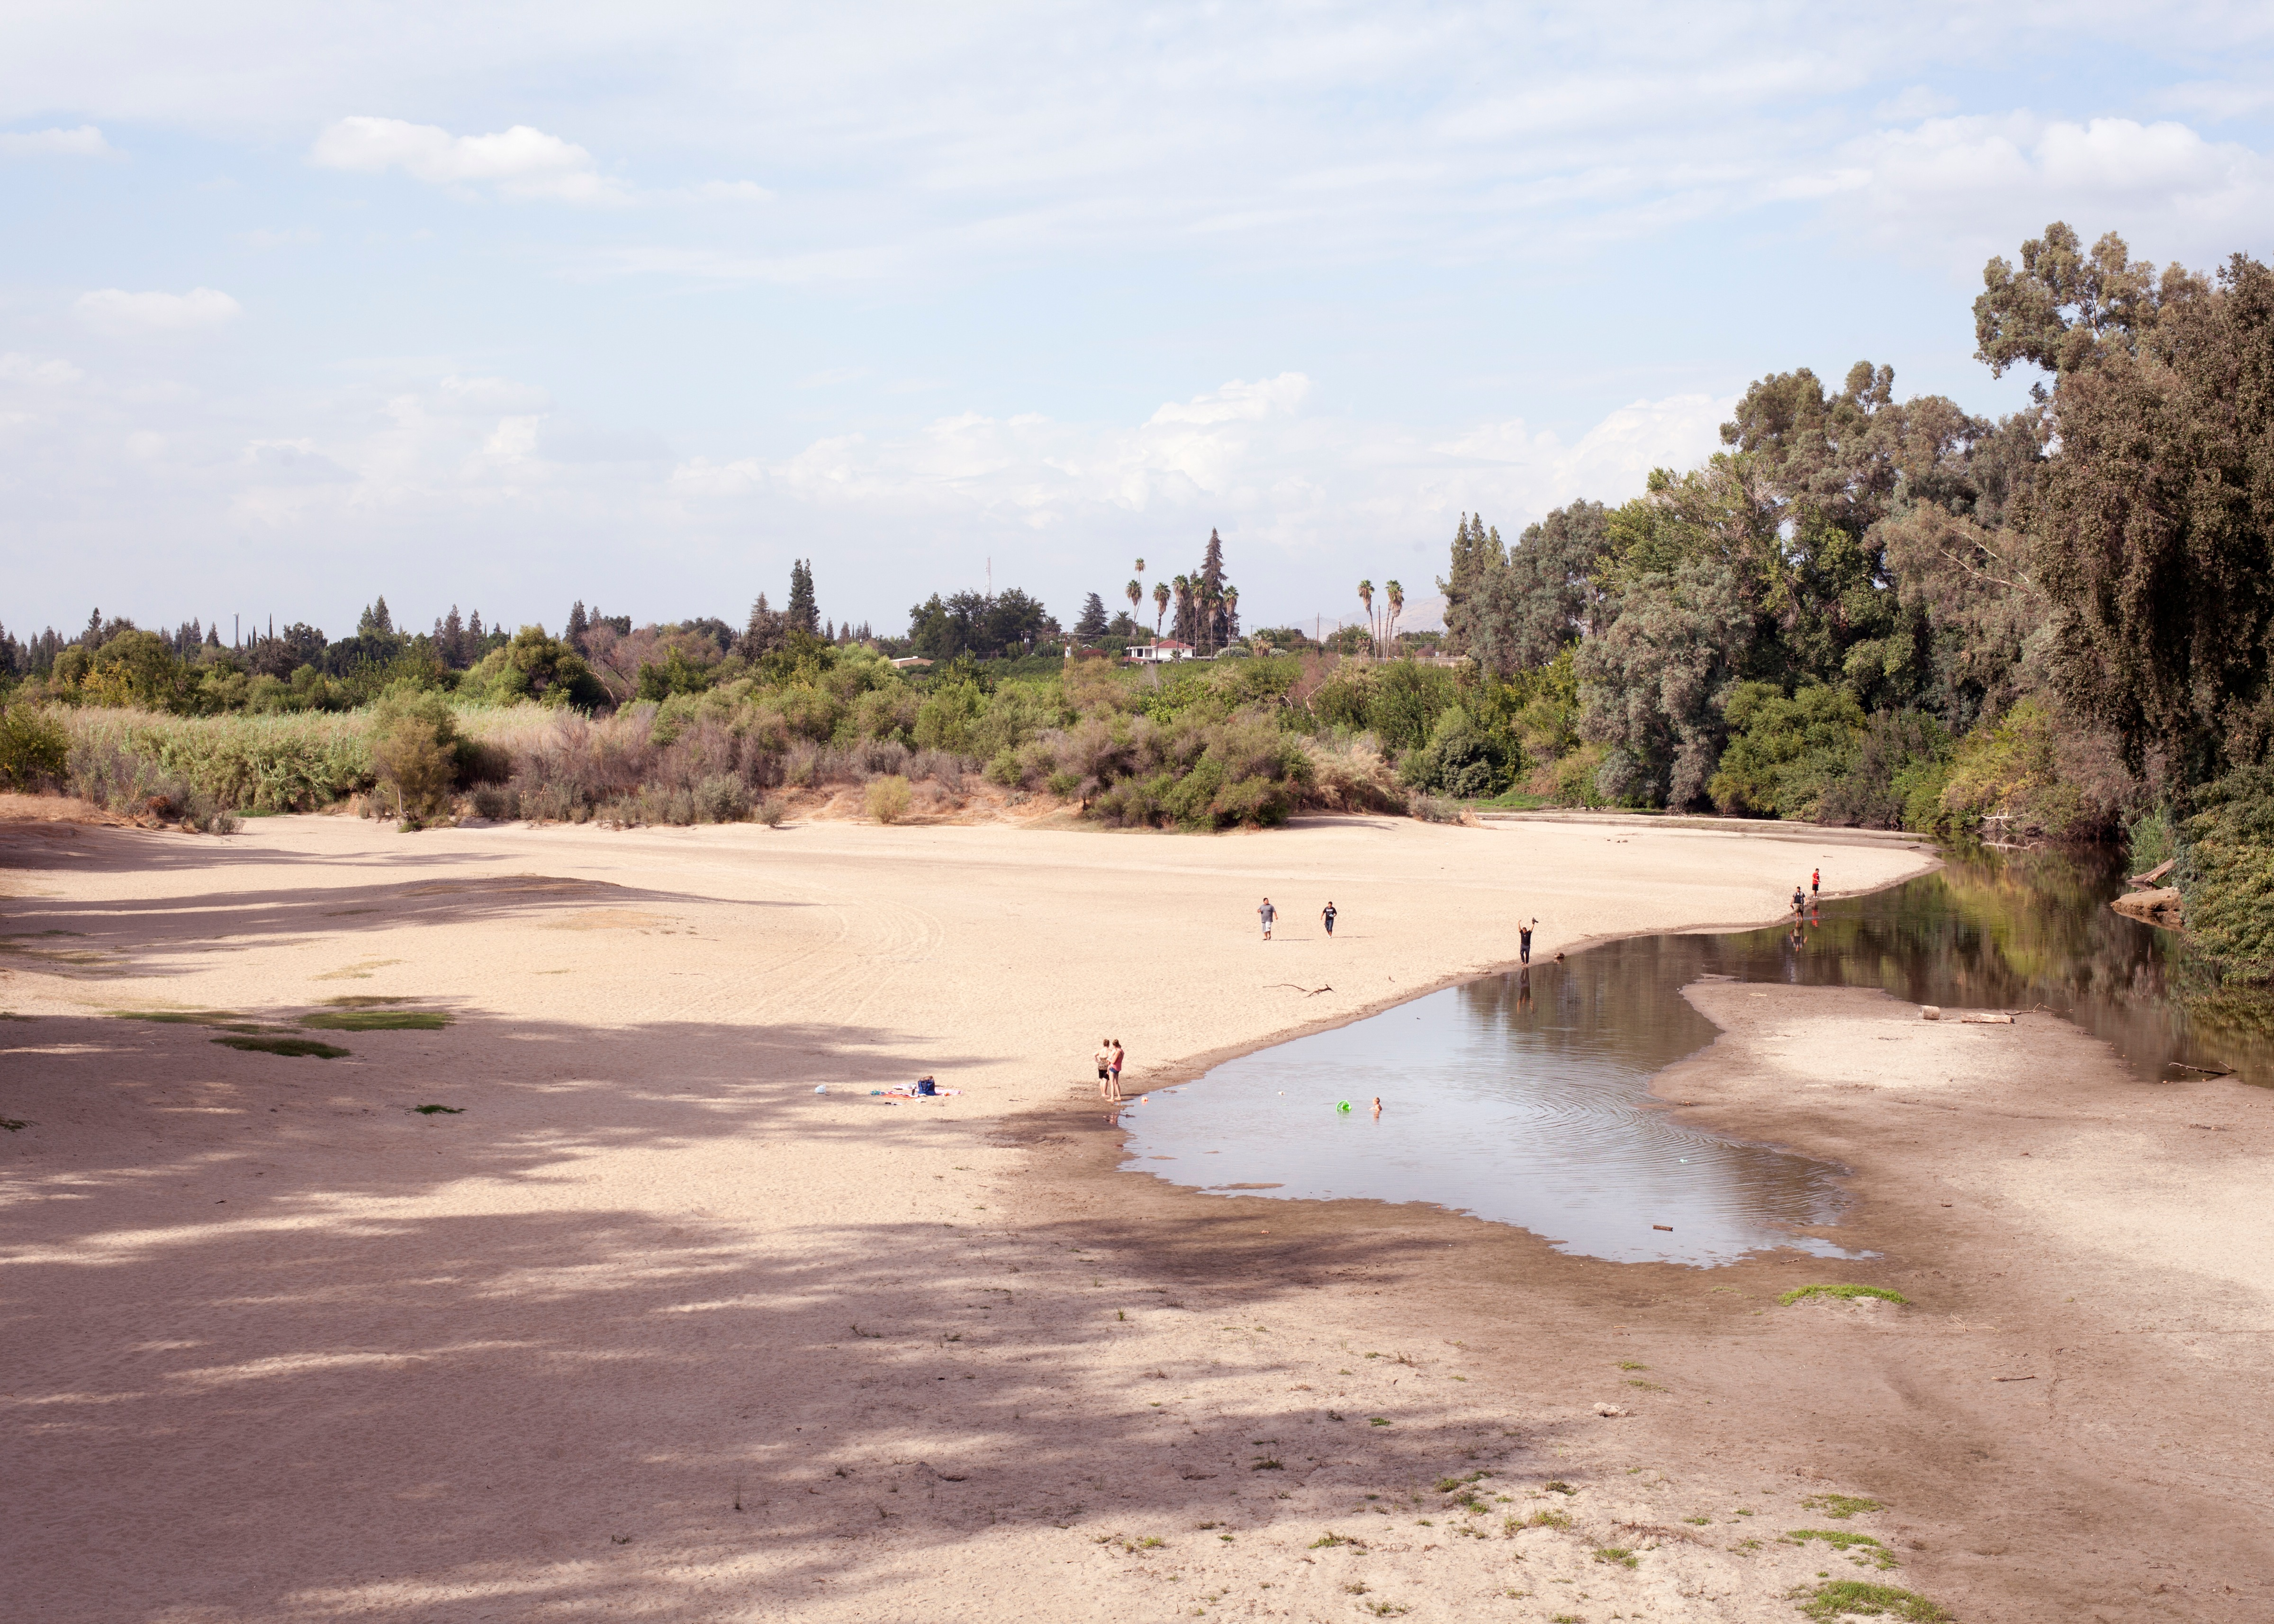 A photograph of a nearly dried riverbed, with several people standing at various spots along its edge.